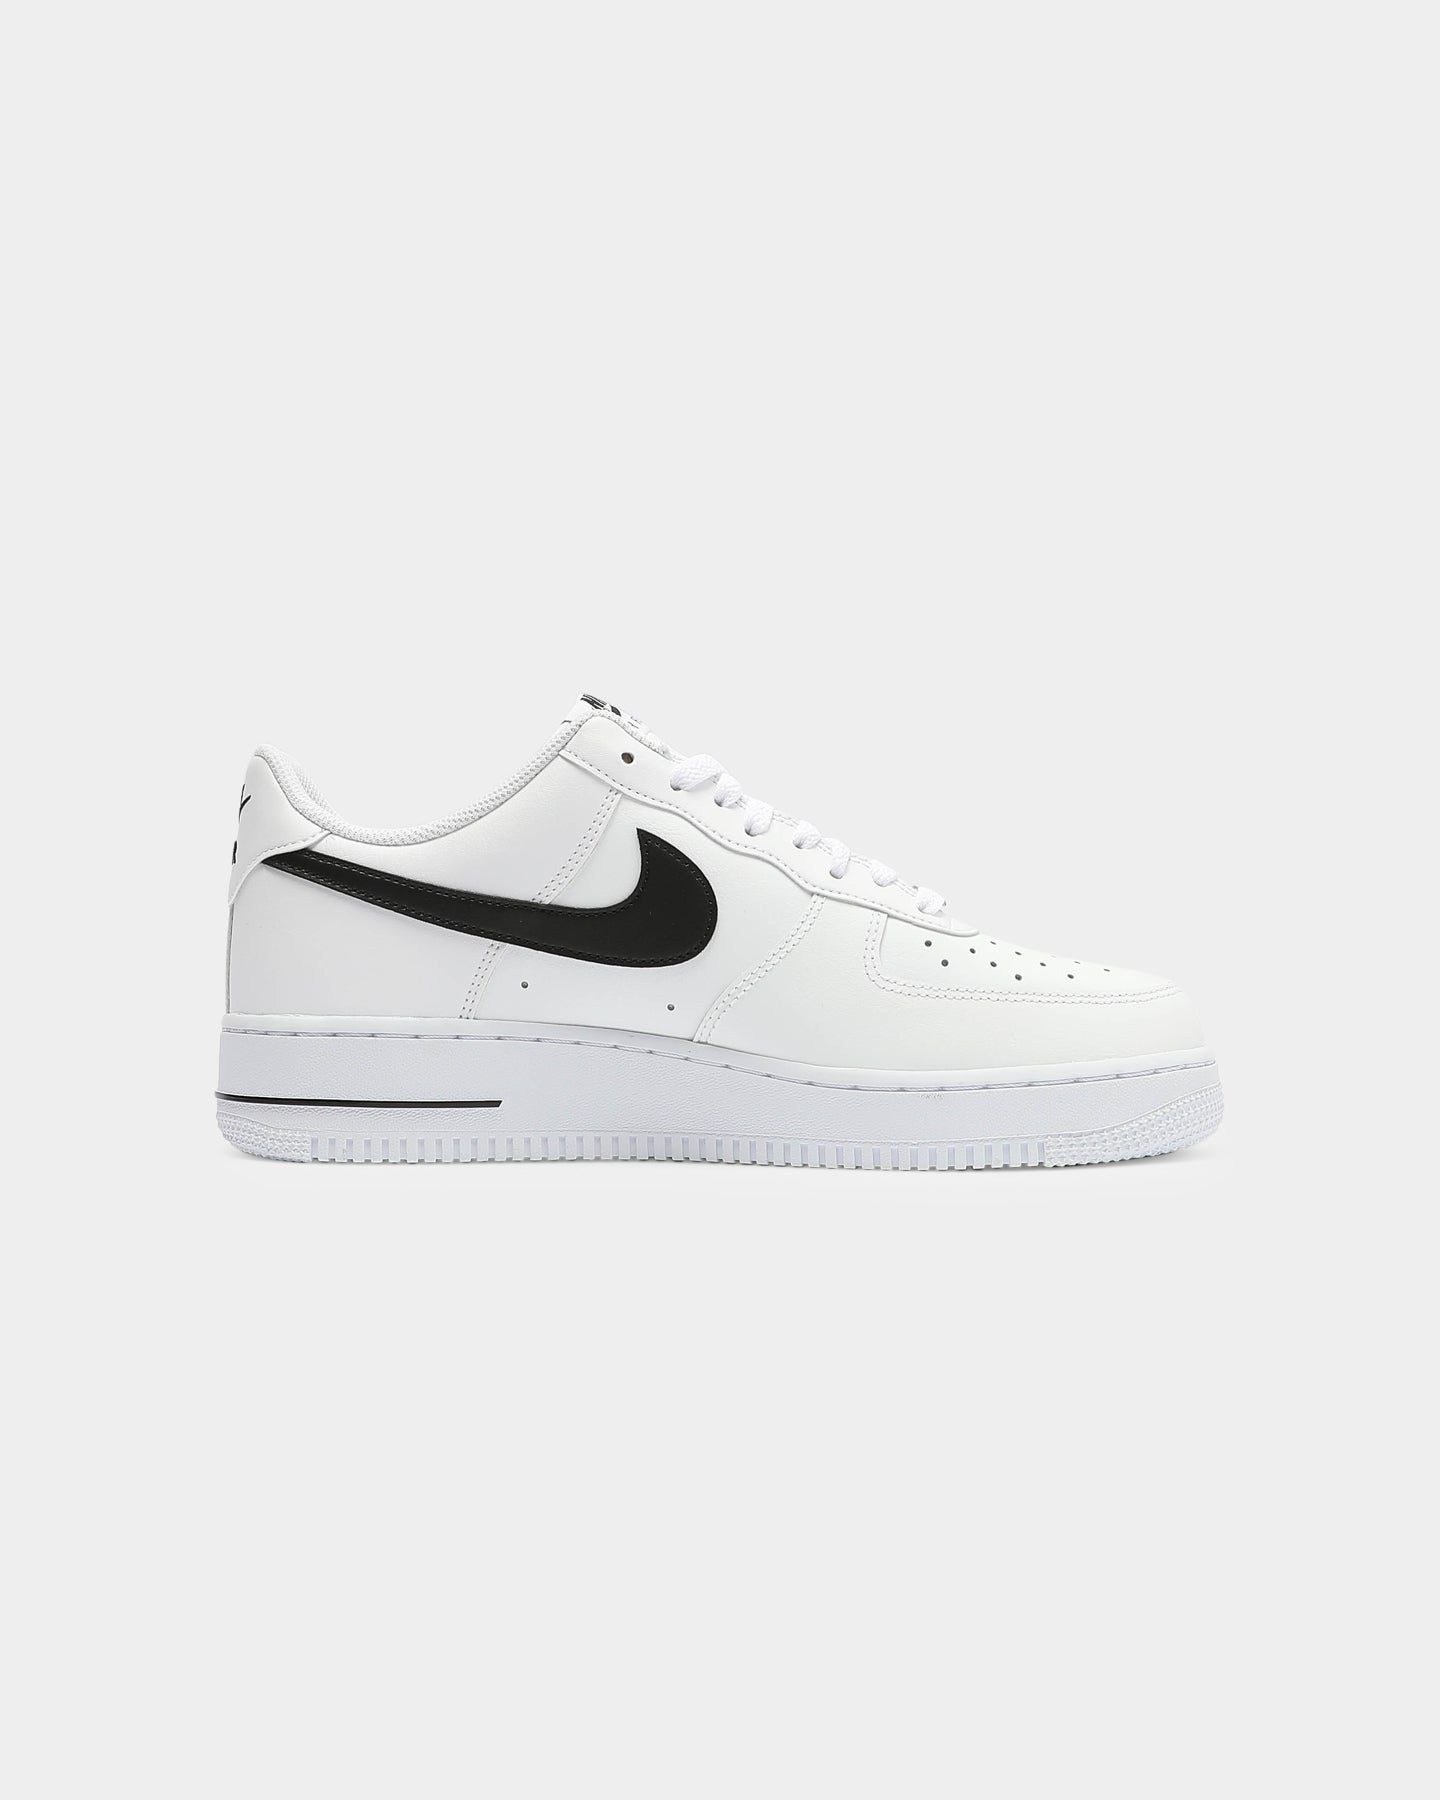 Nike Air Force 1 '07 WhiteBlack